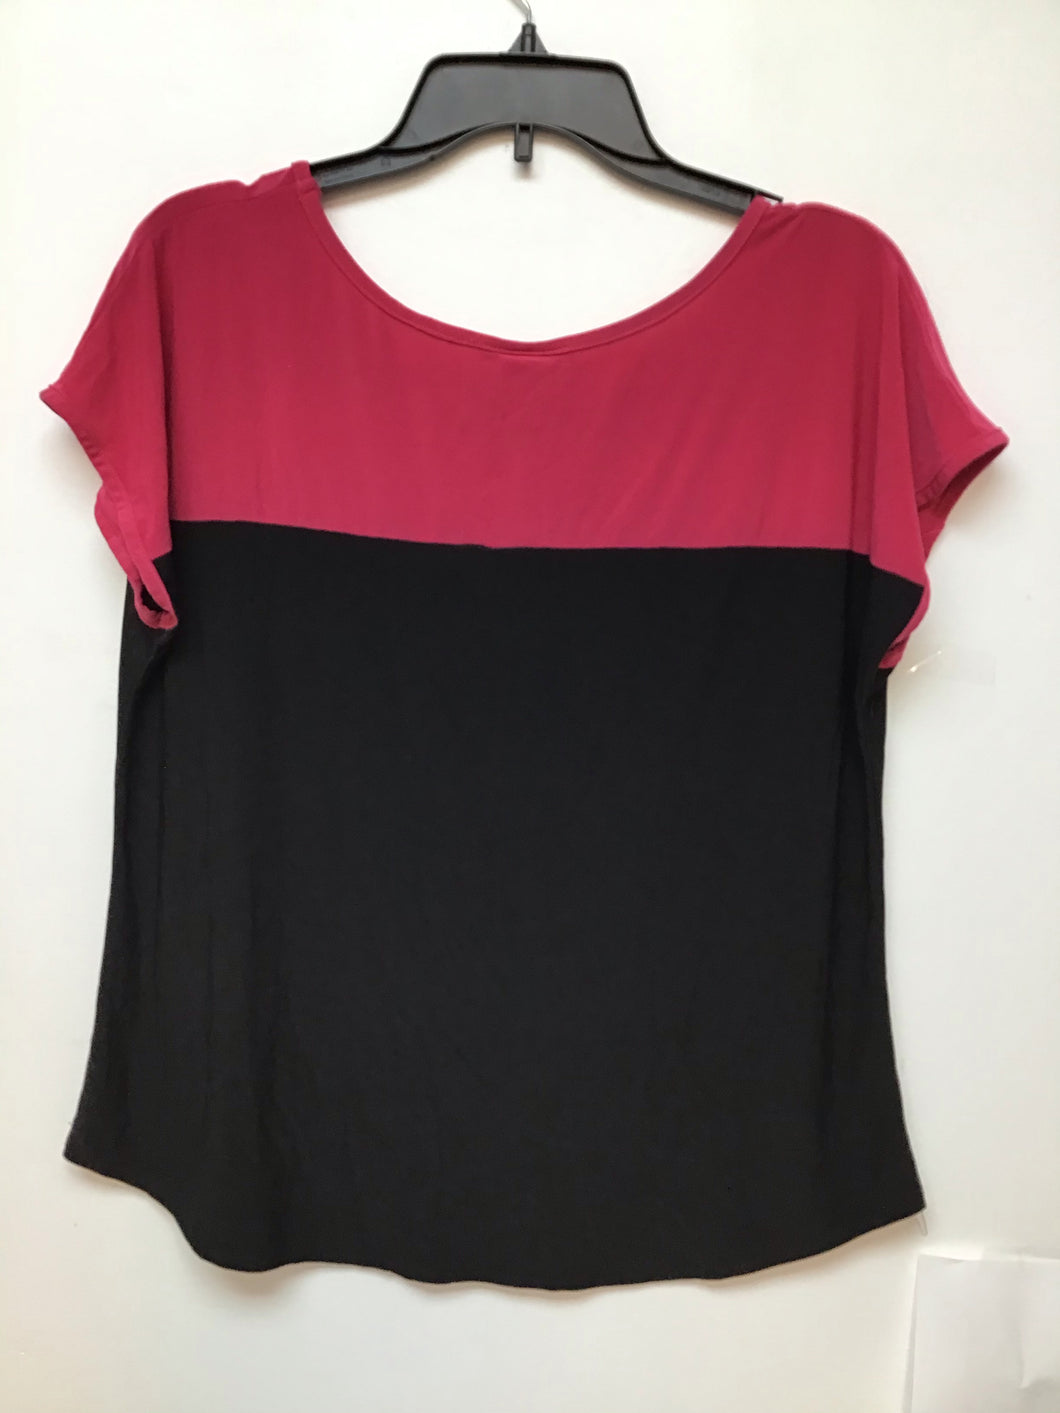 Carol Rose Black and hot pink top size large